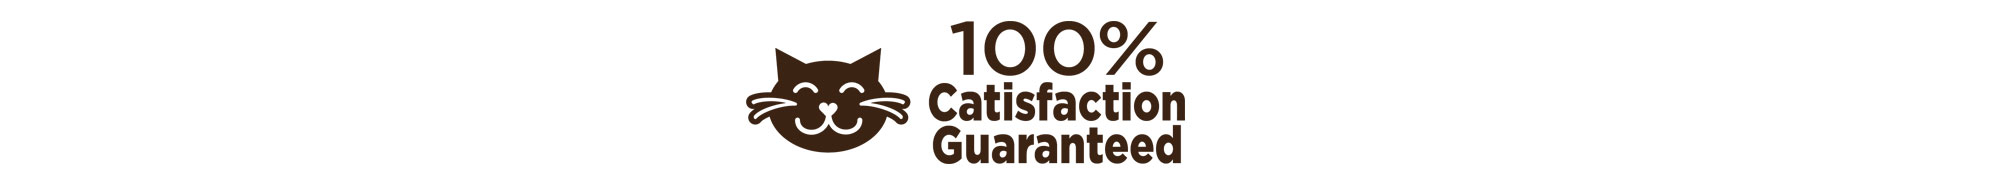 Catisfaction Guarantee